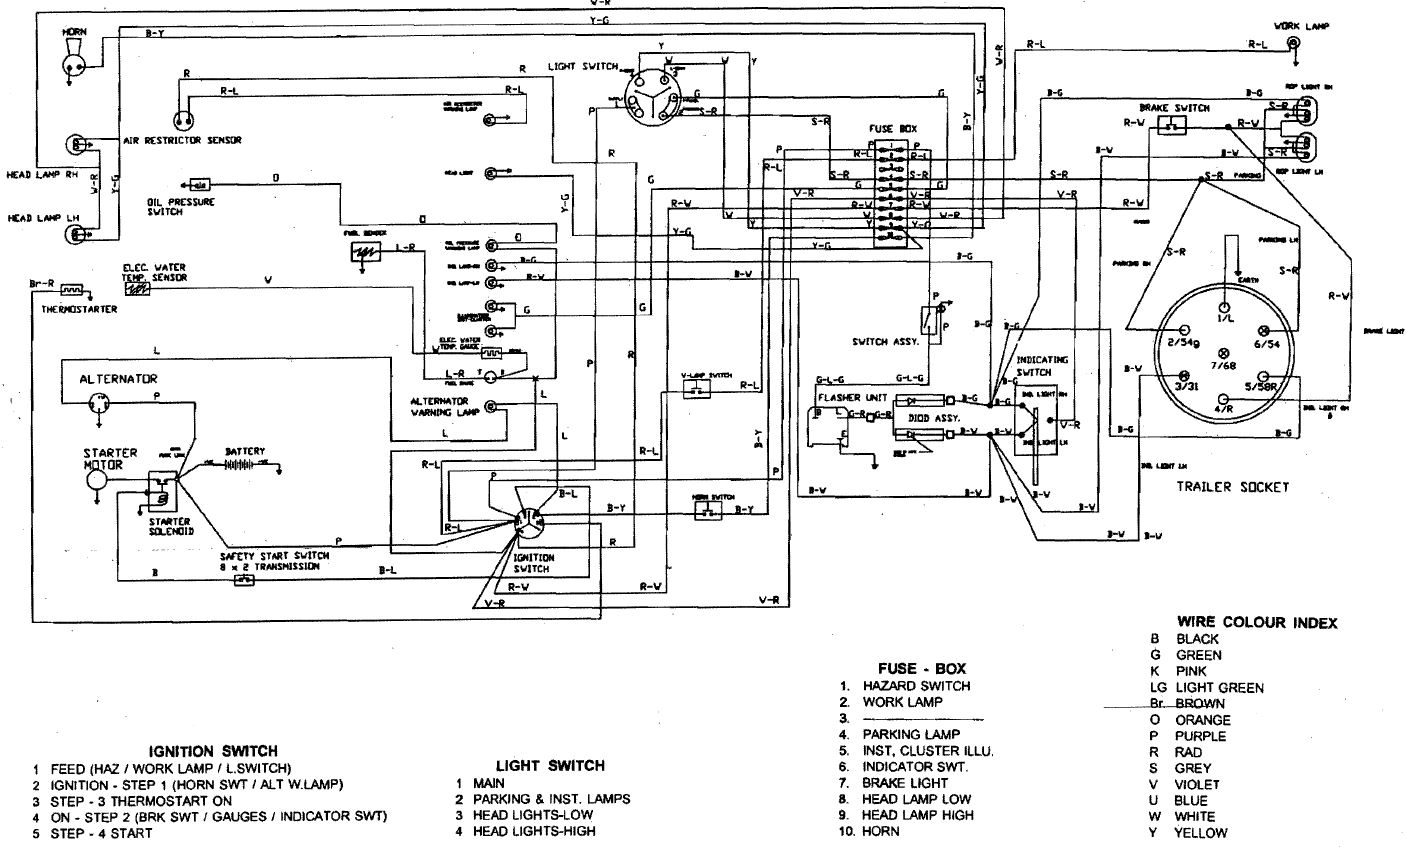 20158463319_b82d524c3d_o ignition switch wiring diagram 316 john deere wiring diagram at n-0.co